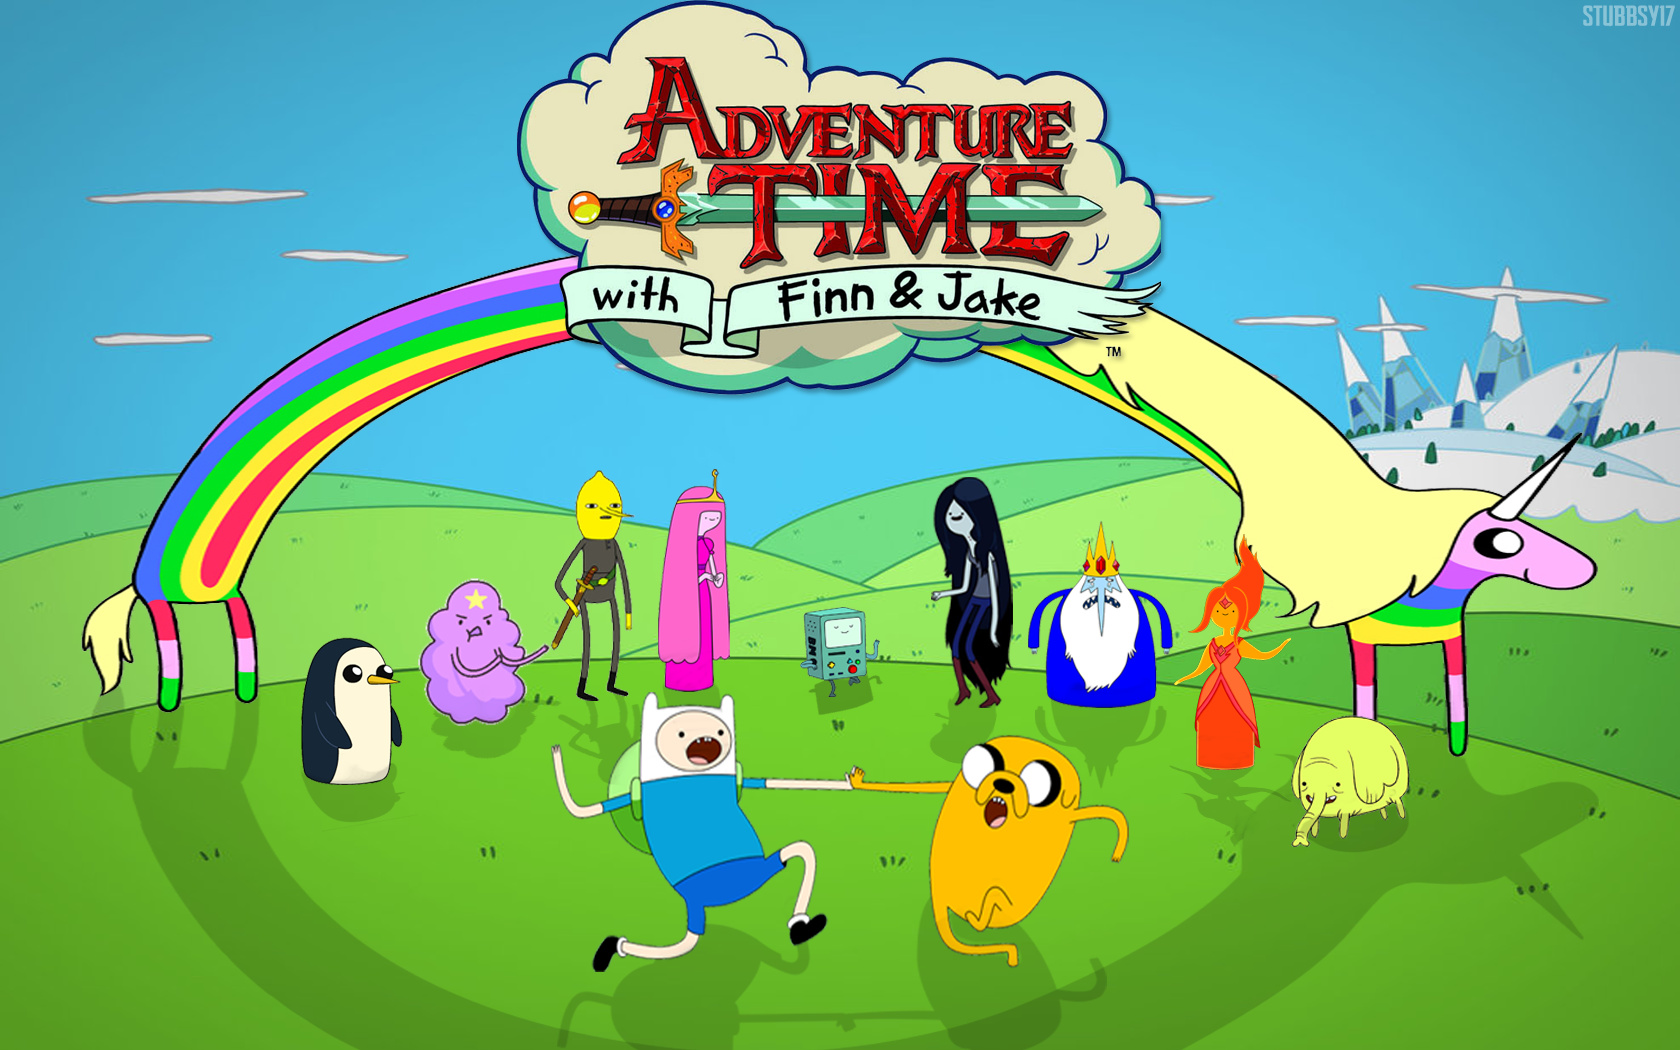 What Adventure time character are you???